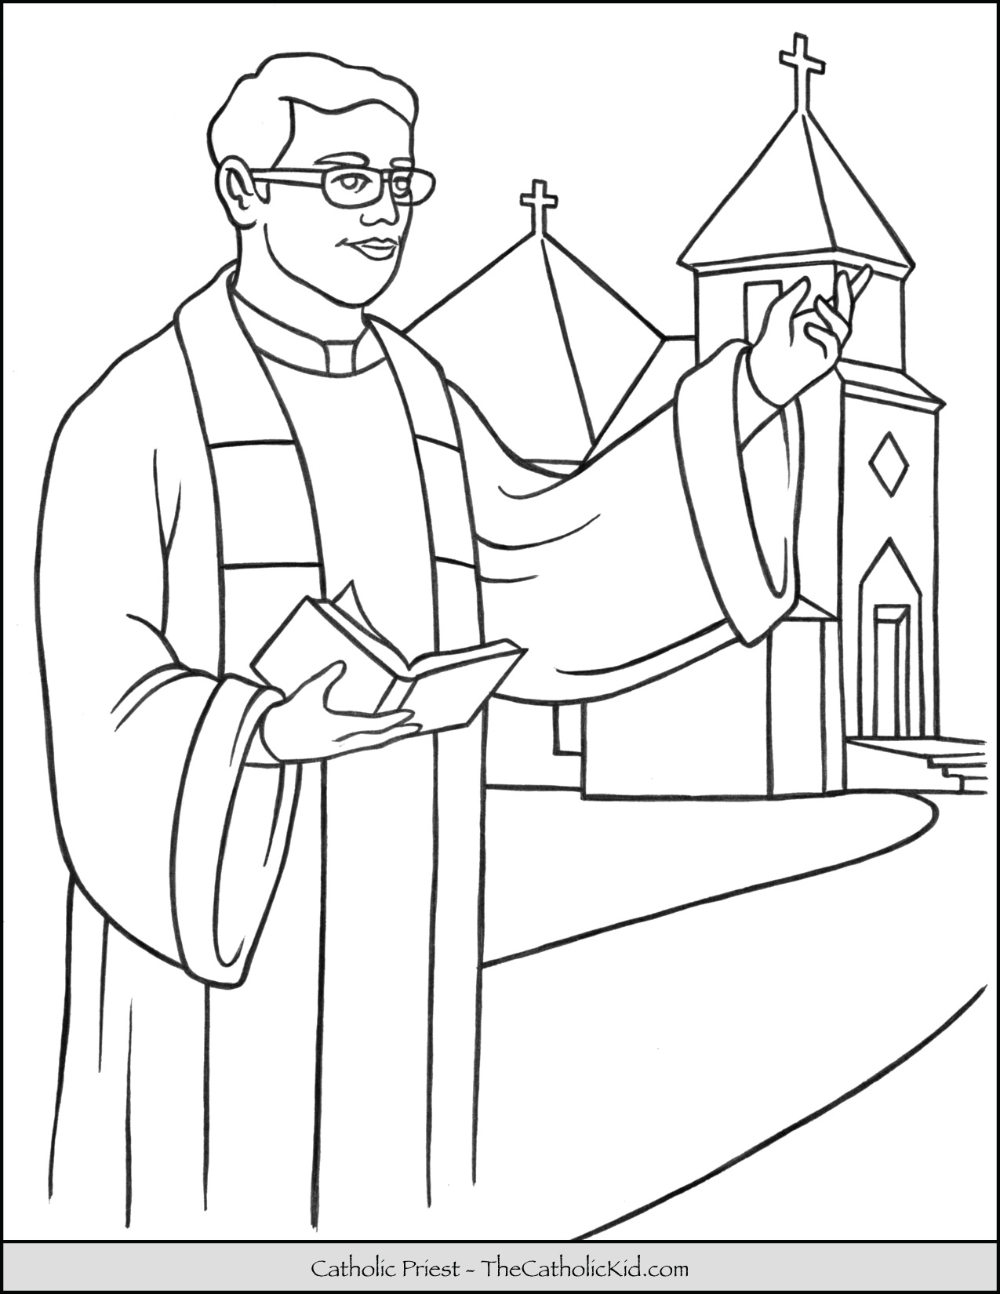 Catholic Priest Coloring Page Thecatholickid Com Catholic Coloring Catholic Priest Coloring Pages